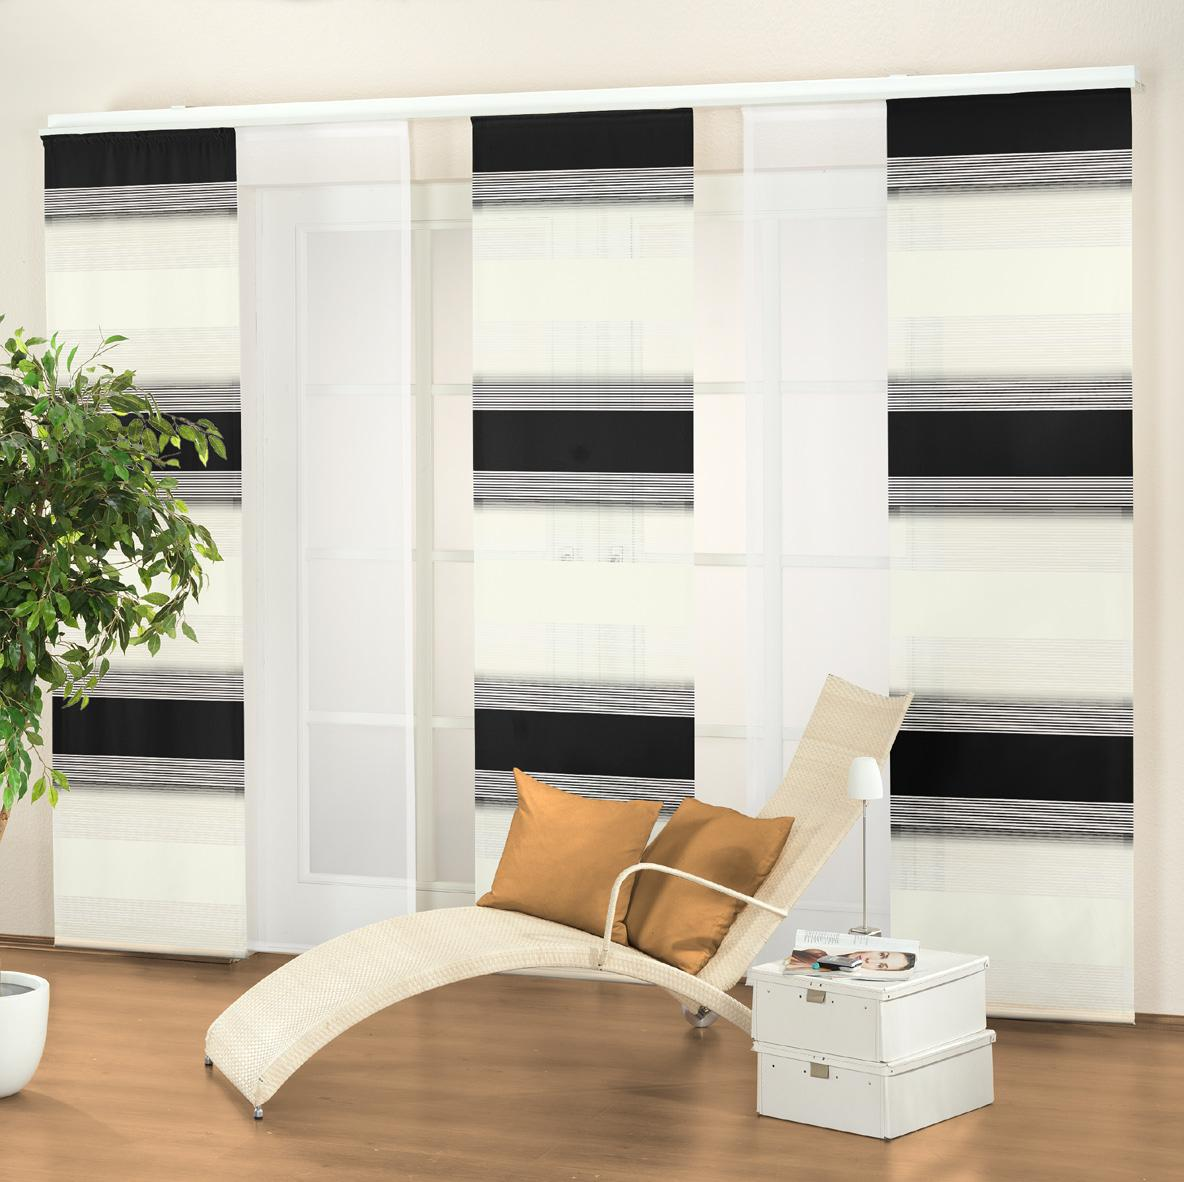 schiebe und fl chenvorhang shiraz 245 x 60cm 7 farben ebay. Black Bedroom Furniture Sets. Home Design Ideas